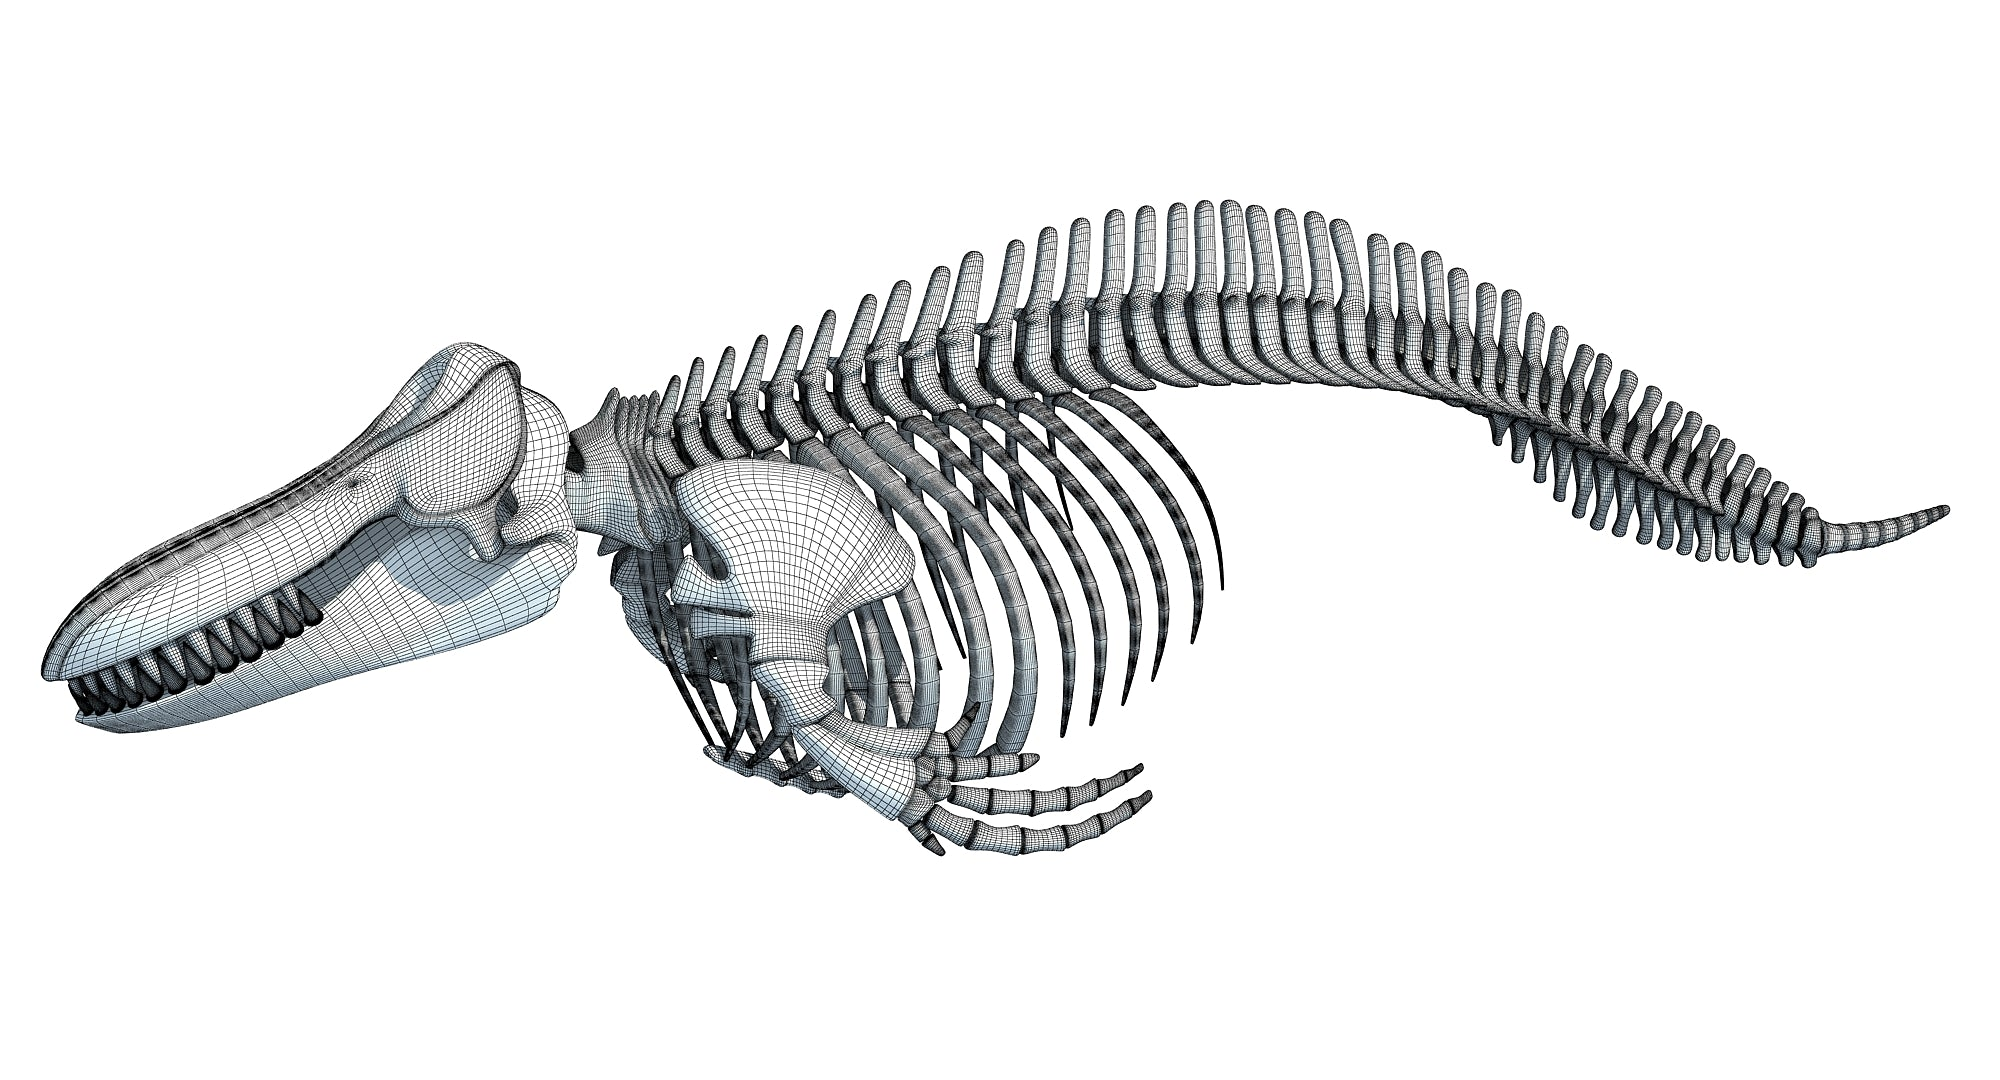 Killer Whale Orca Skeleton